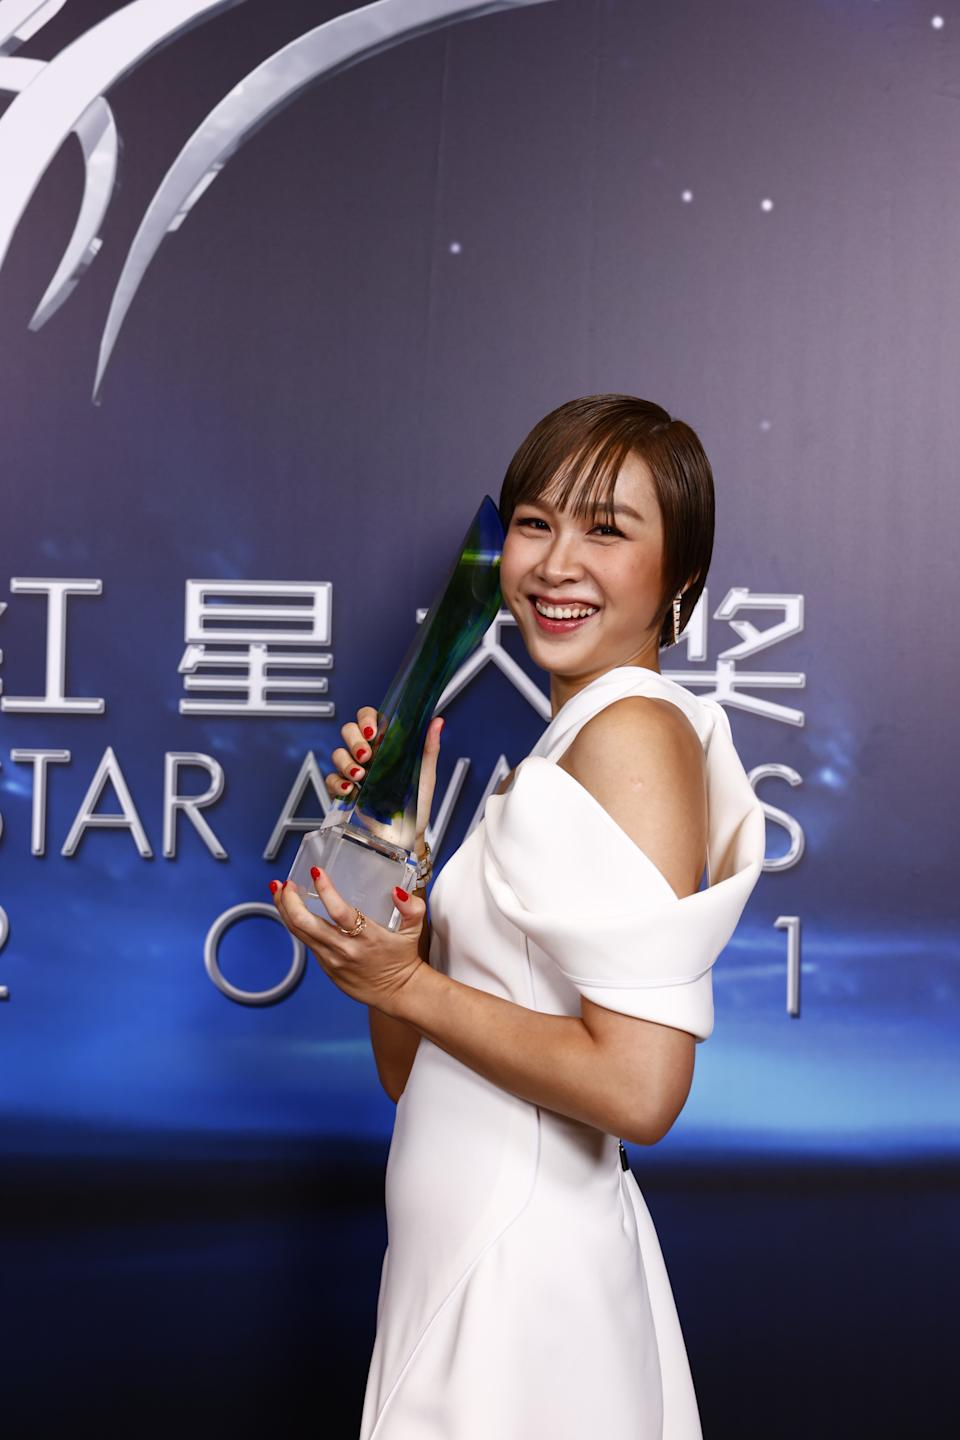 Ya Hui at Star Awards held at Changi Airport on 18 April 2021. (Photo: Mediacorp)